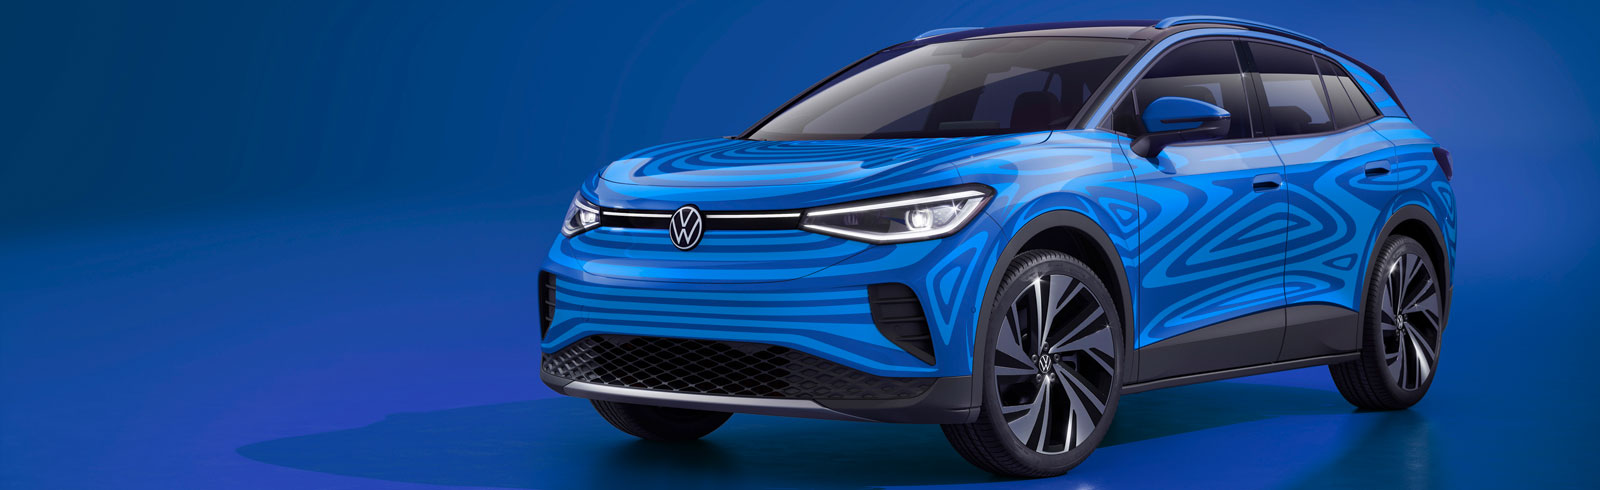 Volkswagen ID.4 will go on sale within the next 12 months, will be produced in USA, Germany, China